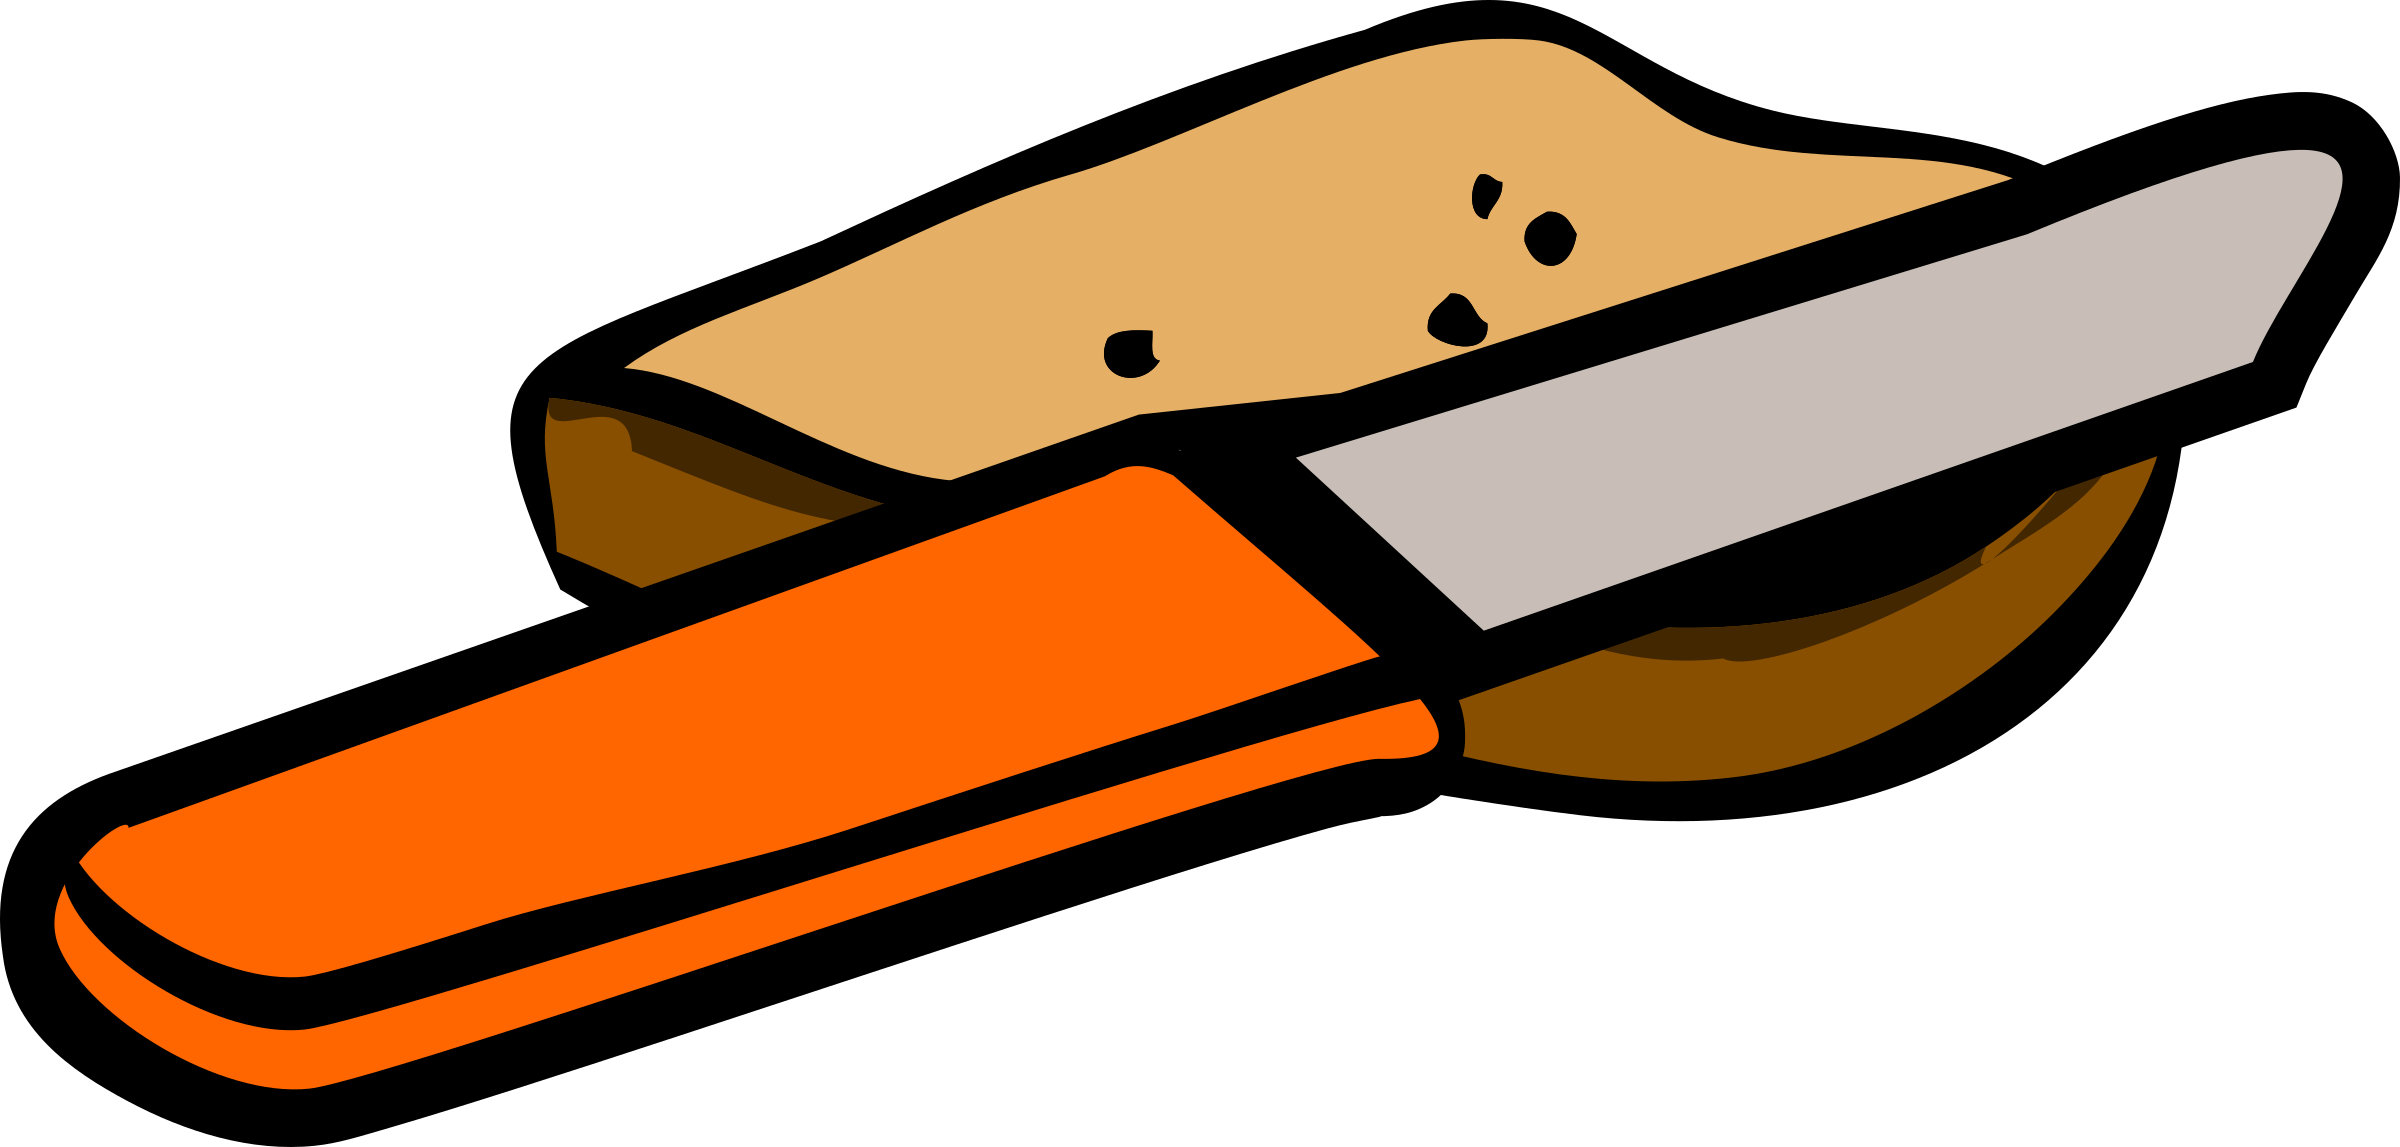 collection of knife. Clipart bread conchas